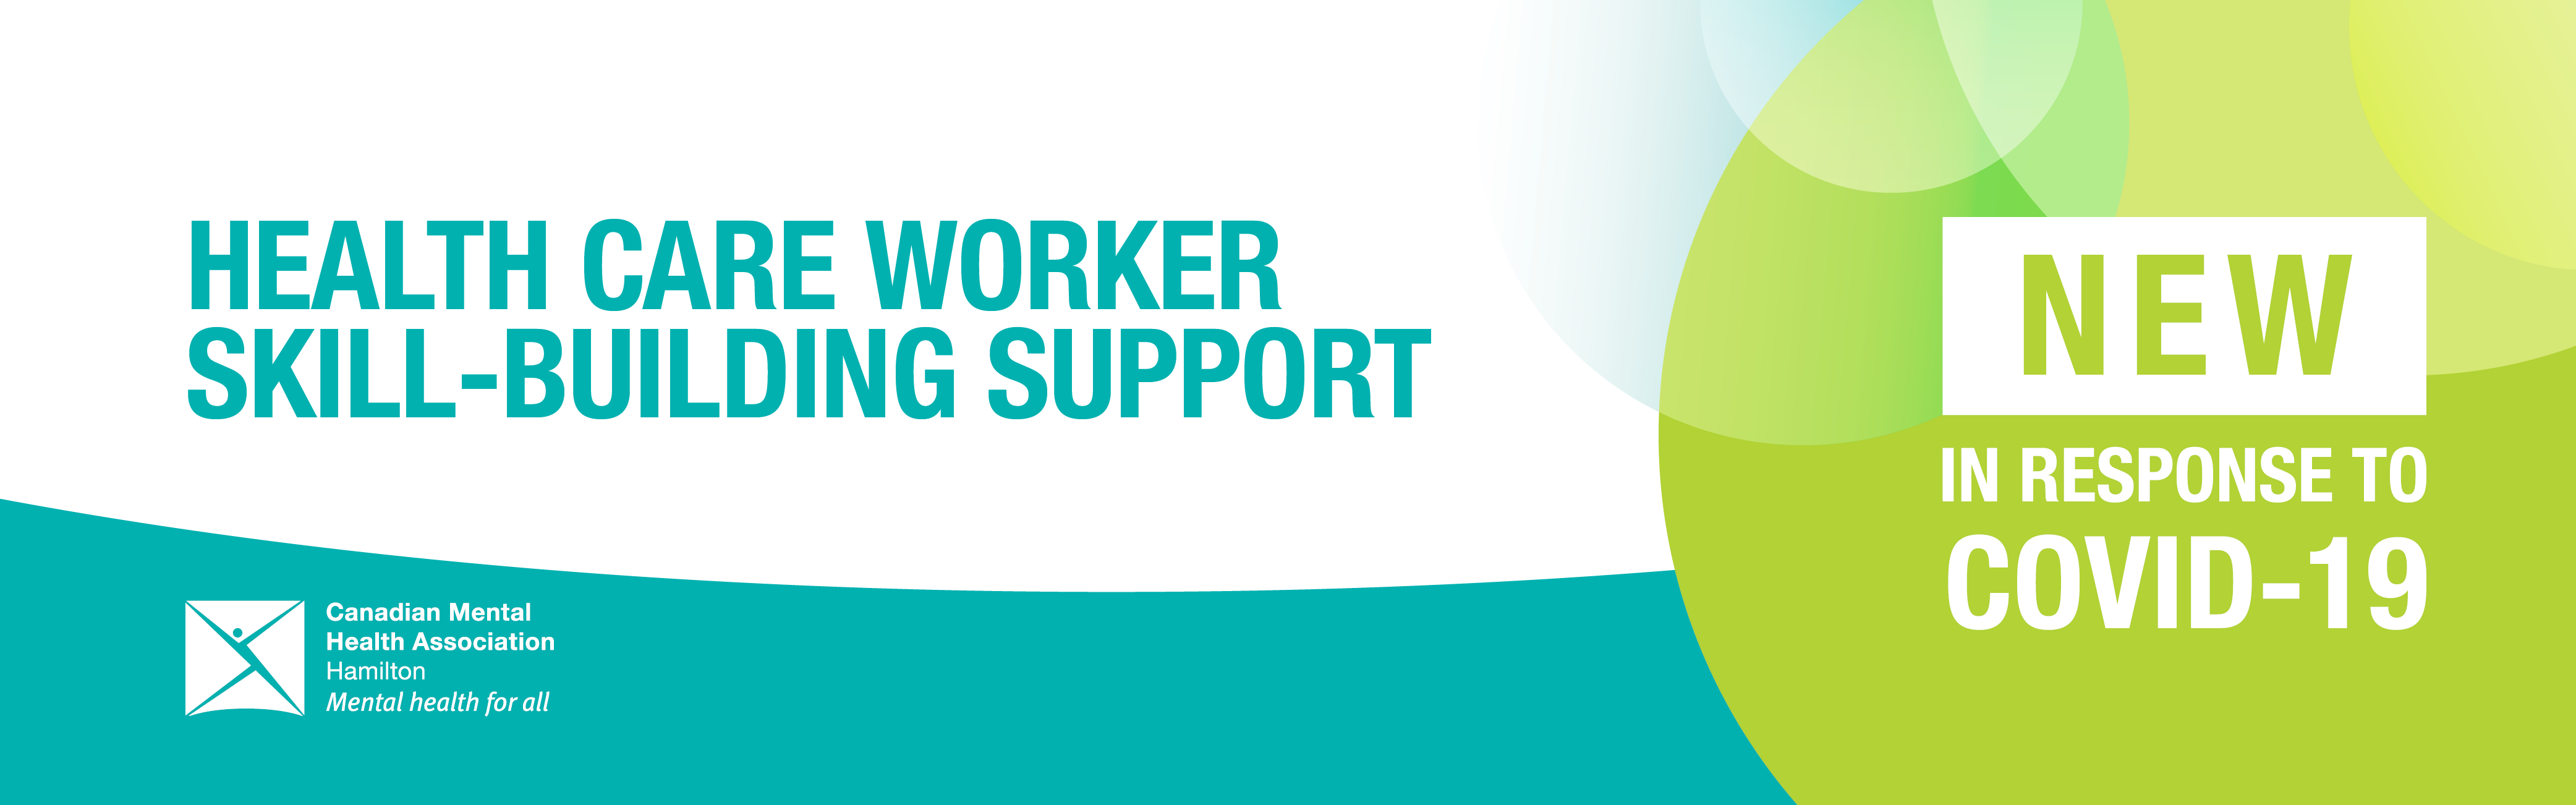 Health care worker skill-building support